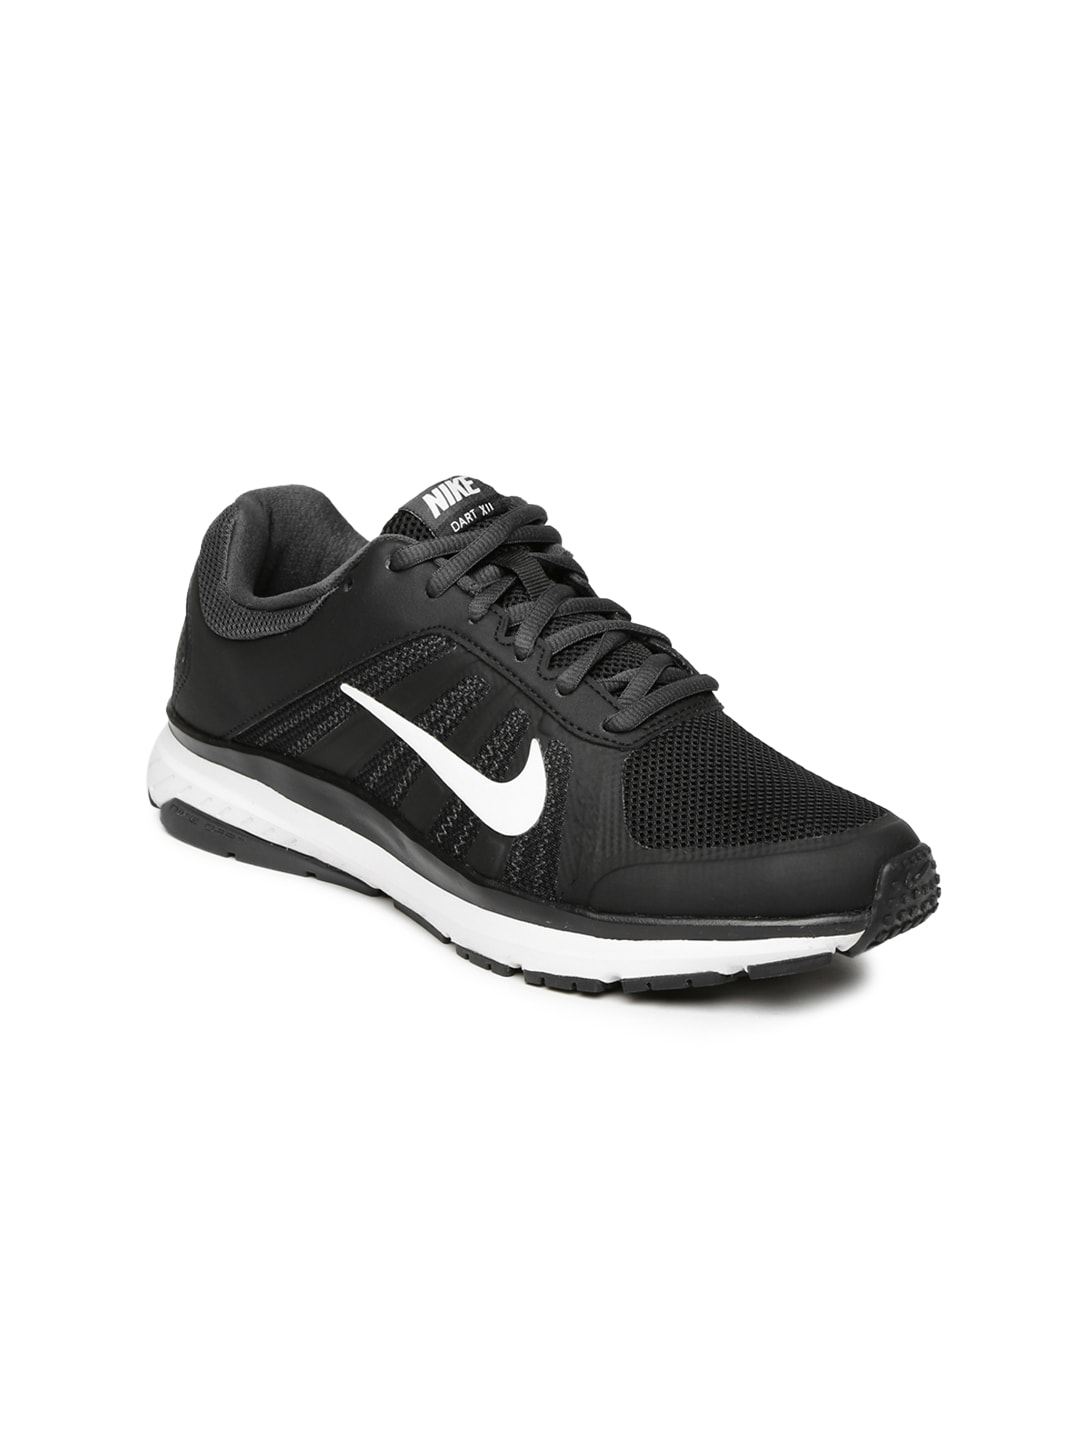 da16fa39e9c1 Nike Shoes - Buy Nike Shoes for Men   Women Online